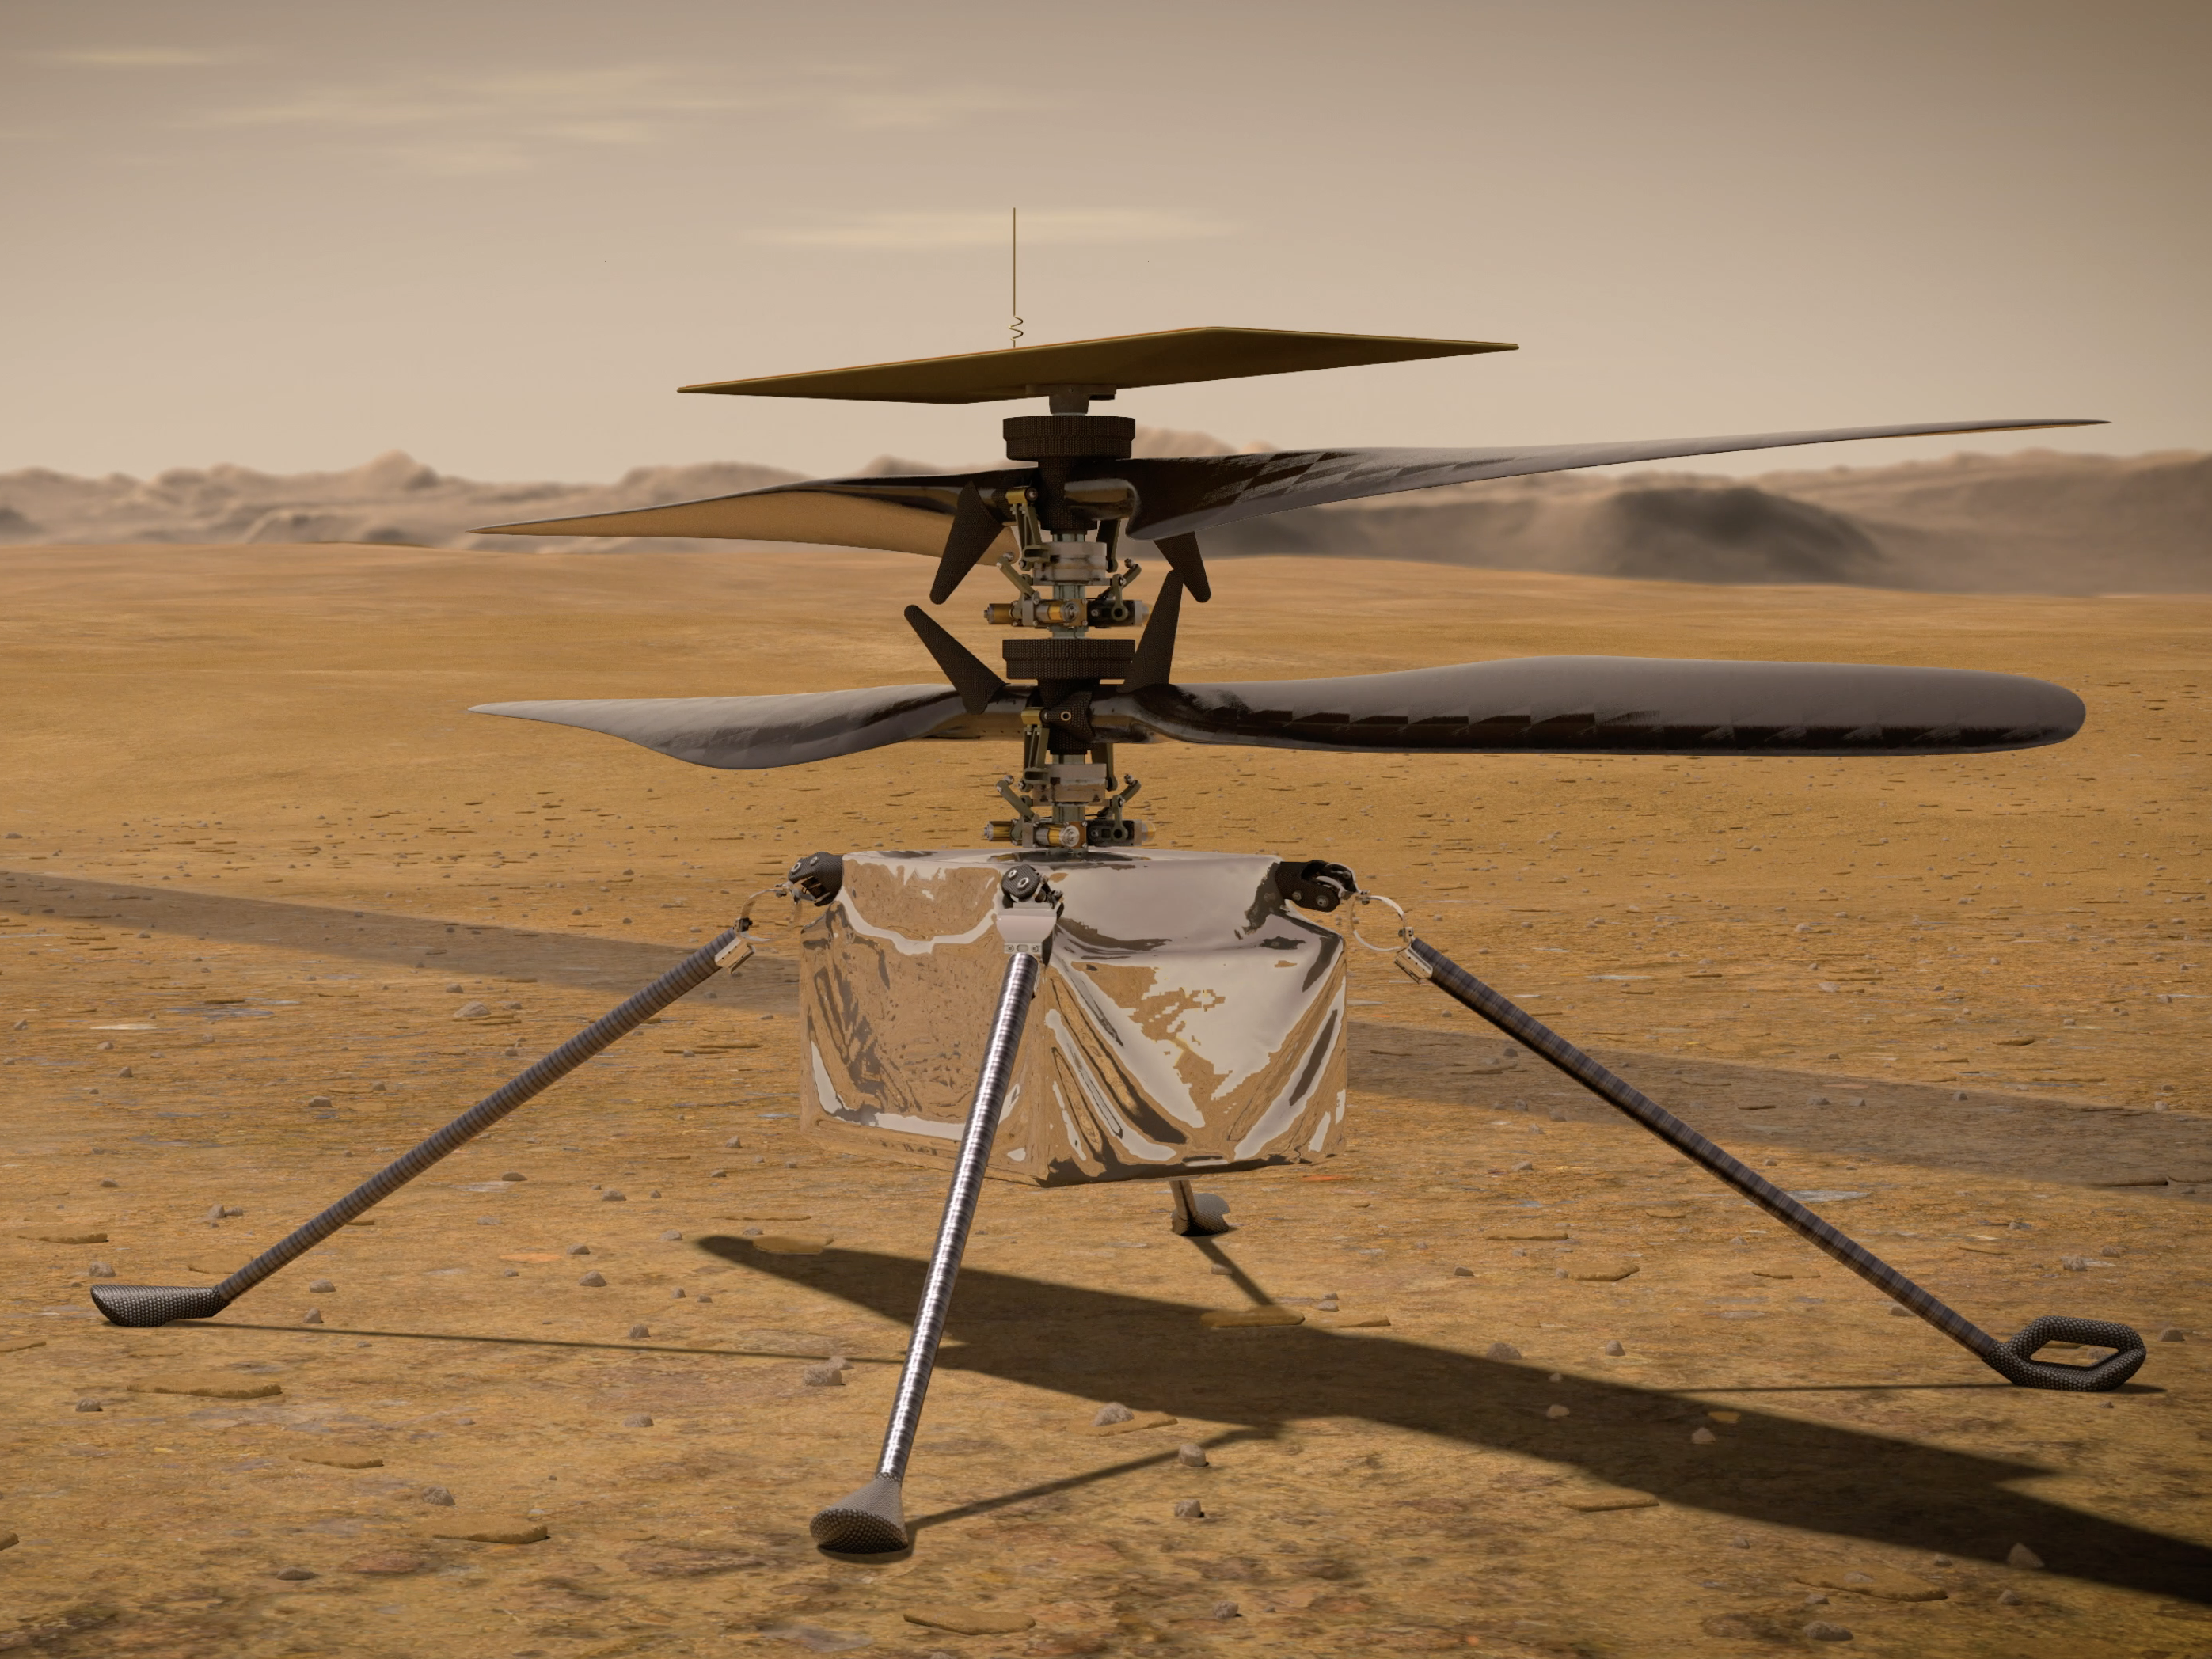 An artist's impression of the Ingenuity helicopter on the surface of Mars.